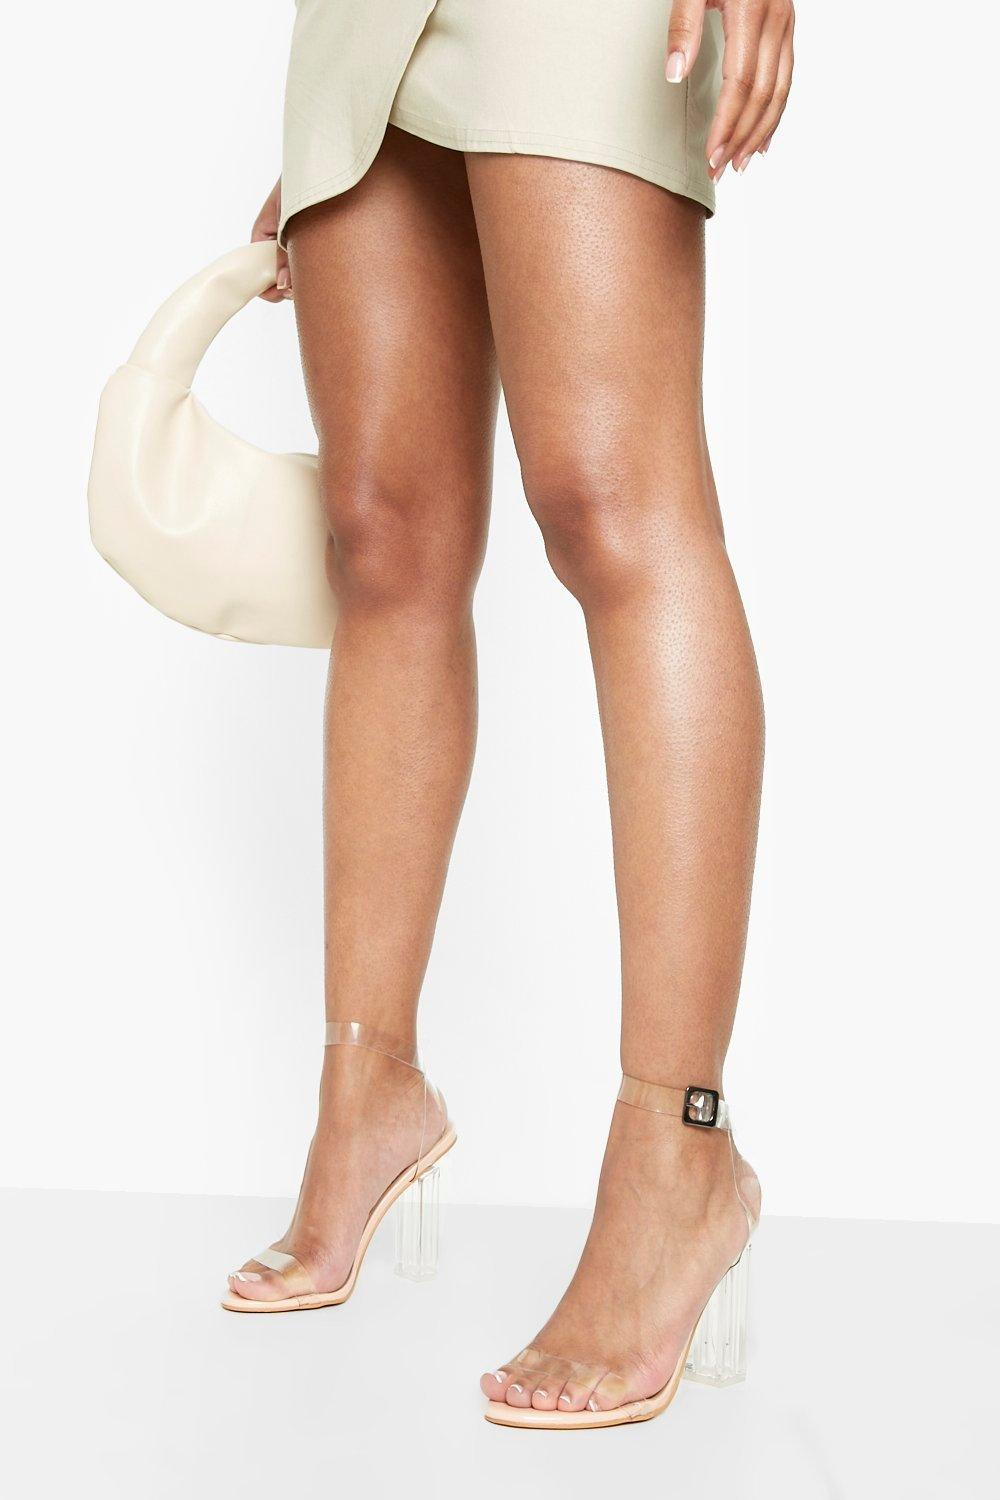 Clear Heels Clear Block Barely There Heels